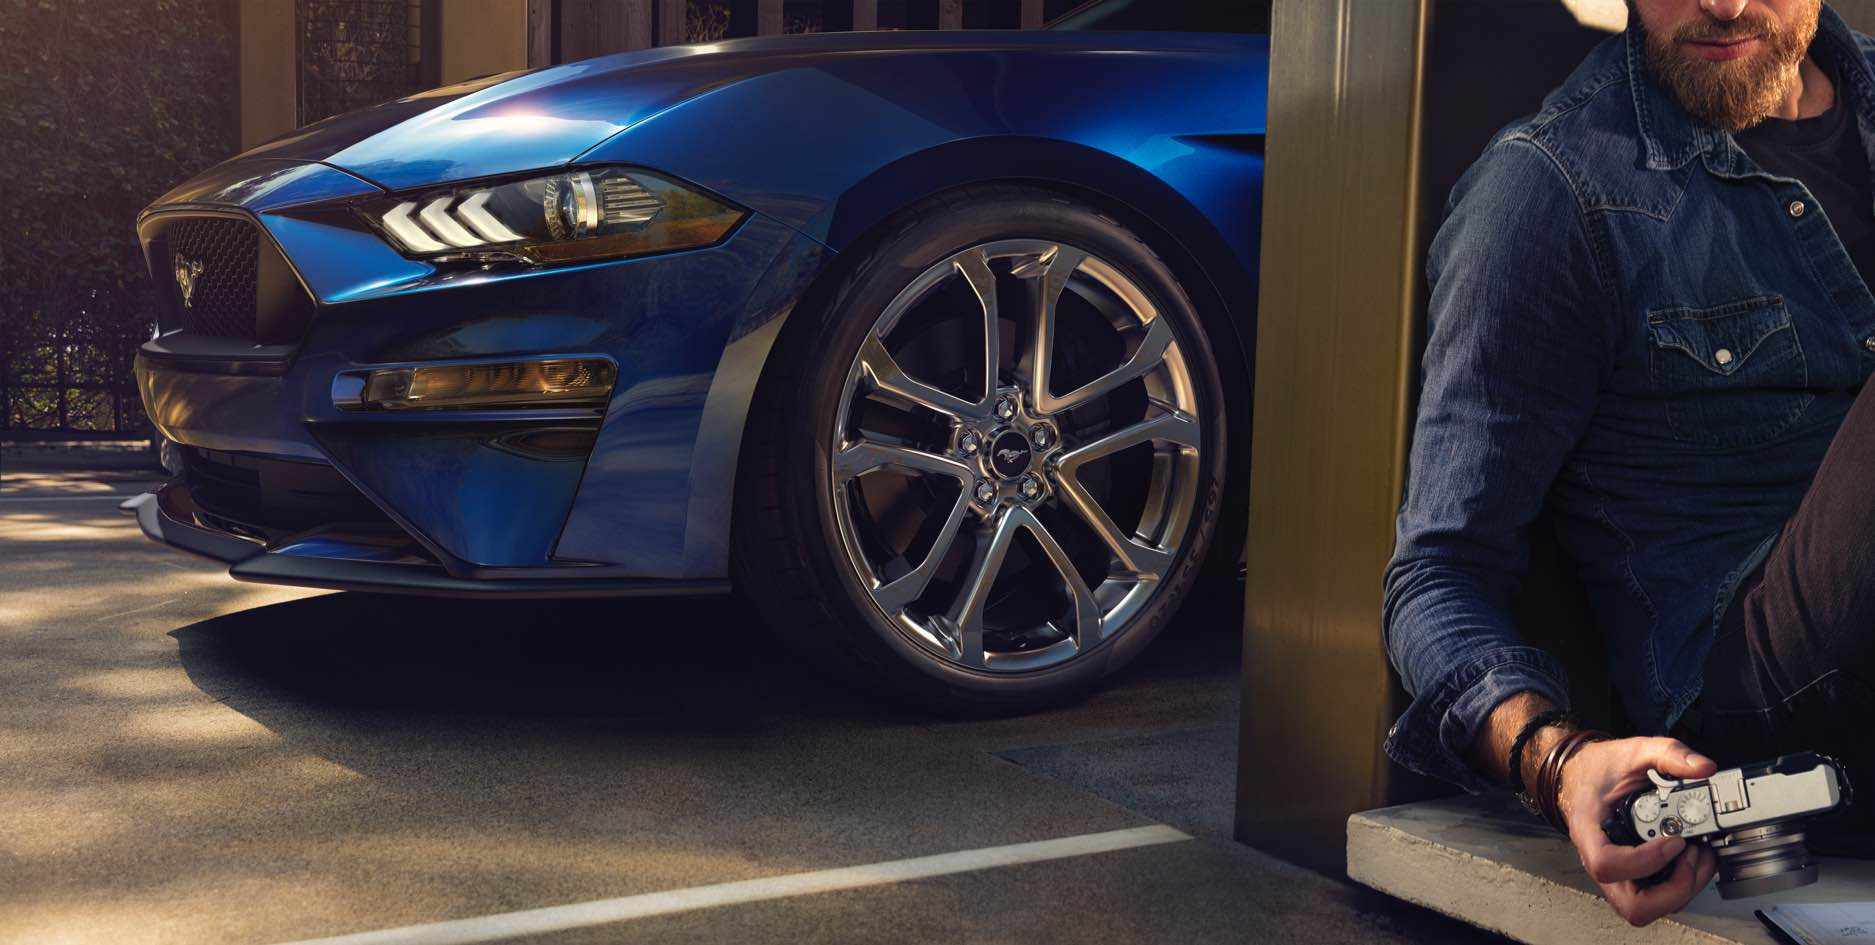 2018 Mustang Gallery 16 Santa Monica Ford Lincoln | New Ford dealership in Santa Monica, CA 90404